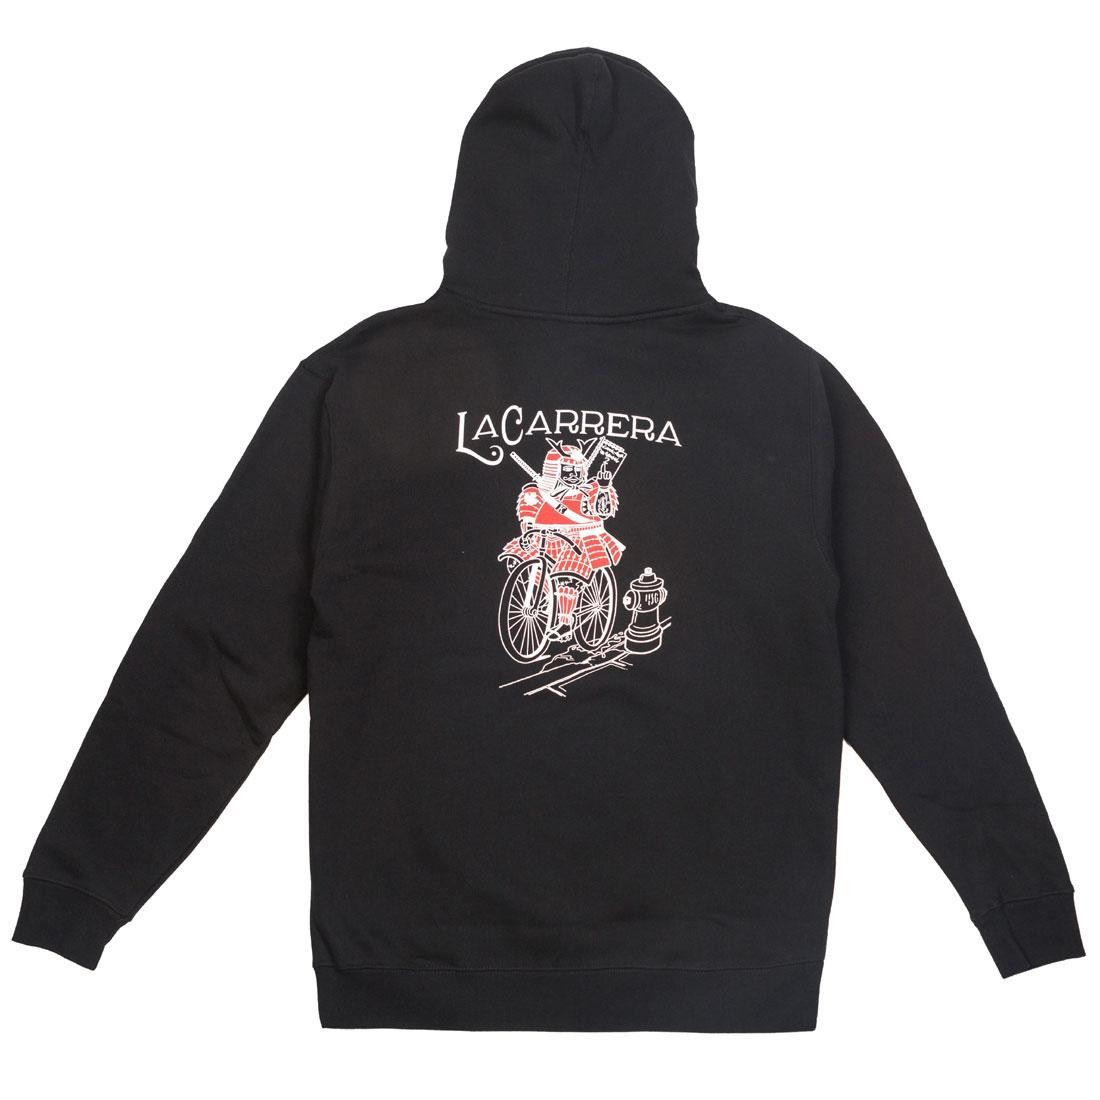 La Carrera Men Look Ma No Brakes Hoody (black)